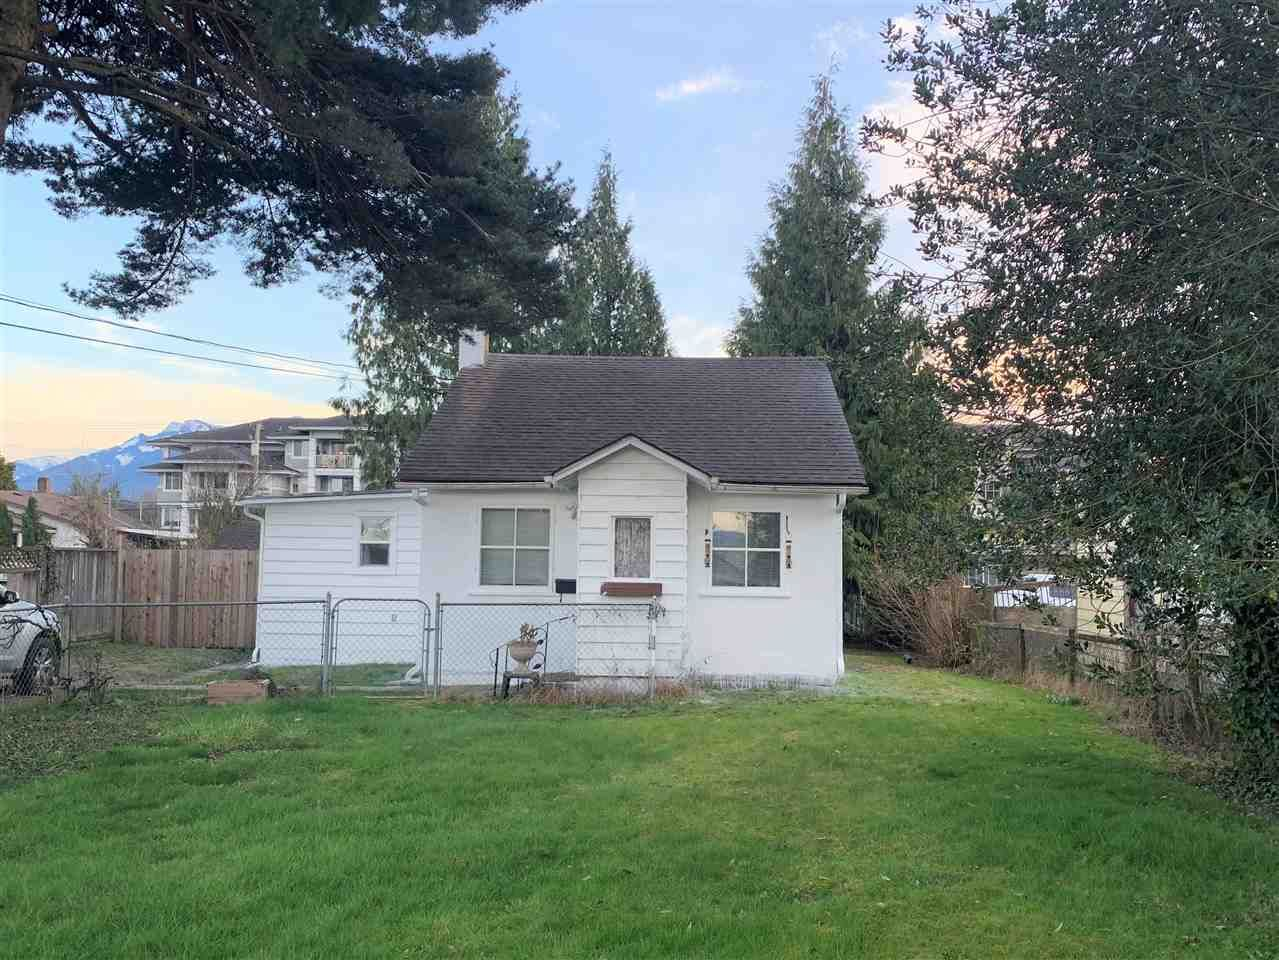 Main Photo: 46272 GORE Avenue in Chilliwack: Chilliwack E Young-Yale House for sale : MLS®# R2559013